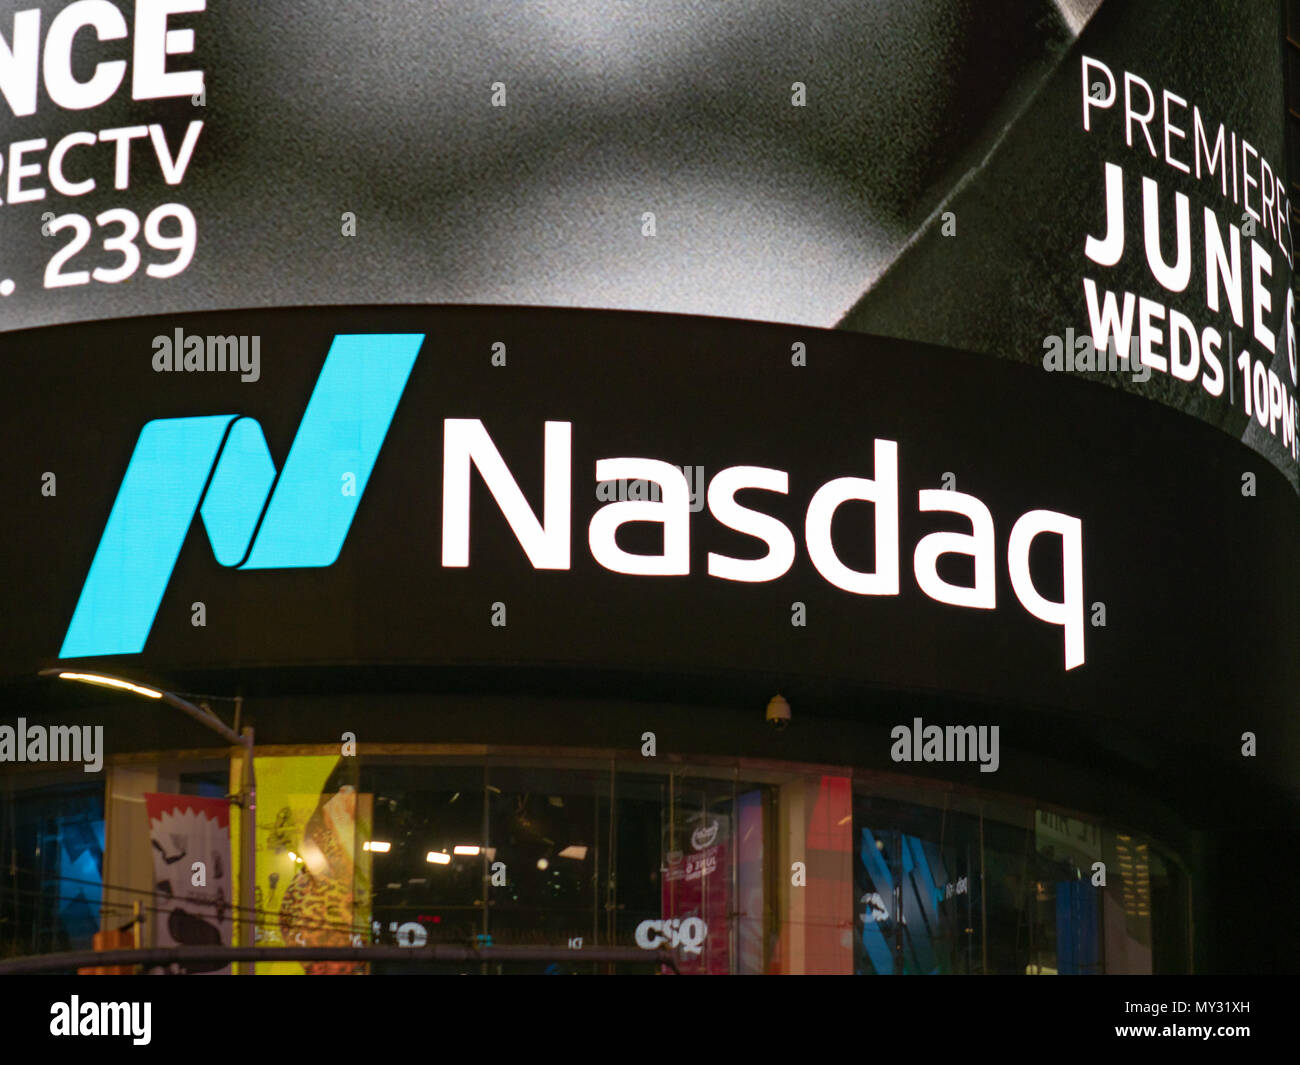 NEW YORK, NY – MAY 16, 2018: NASDAQ MarketSite location at Times Square. This is the commercial marketing presence of the NASDAQ stock market - Stock Image